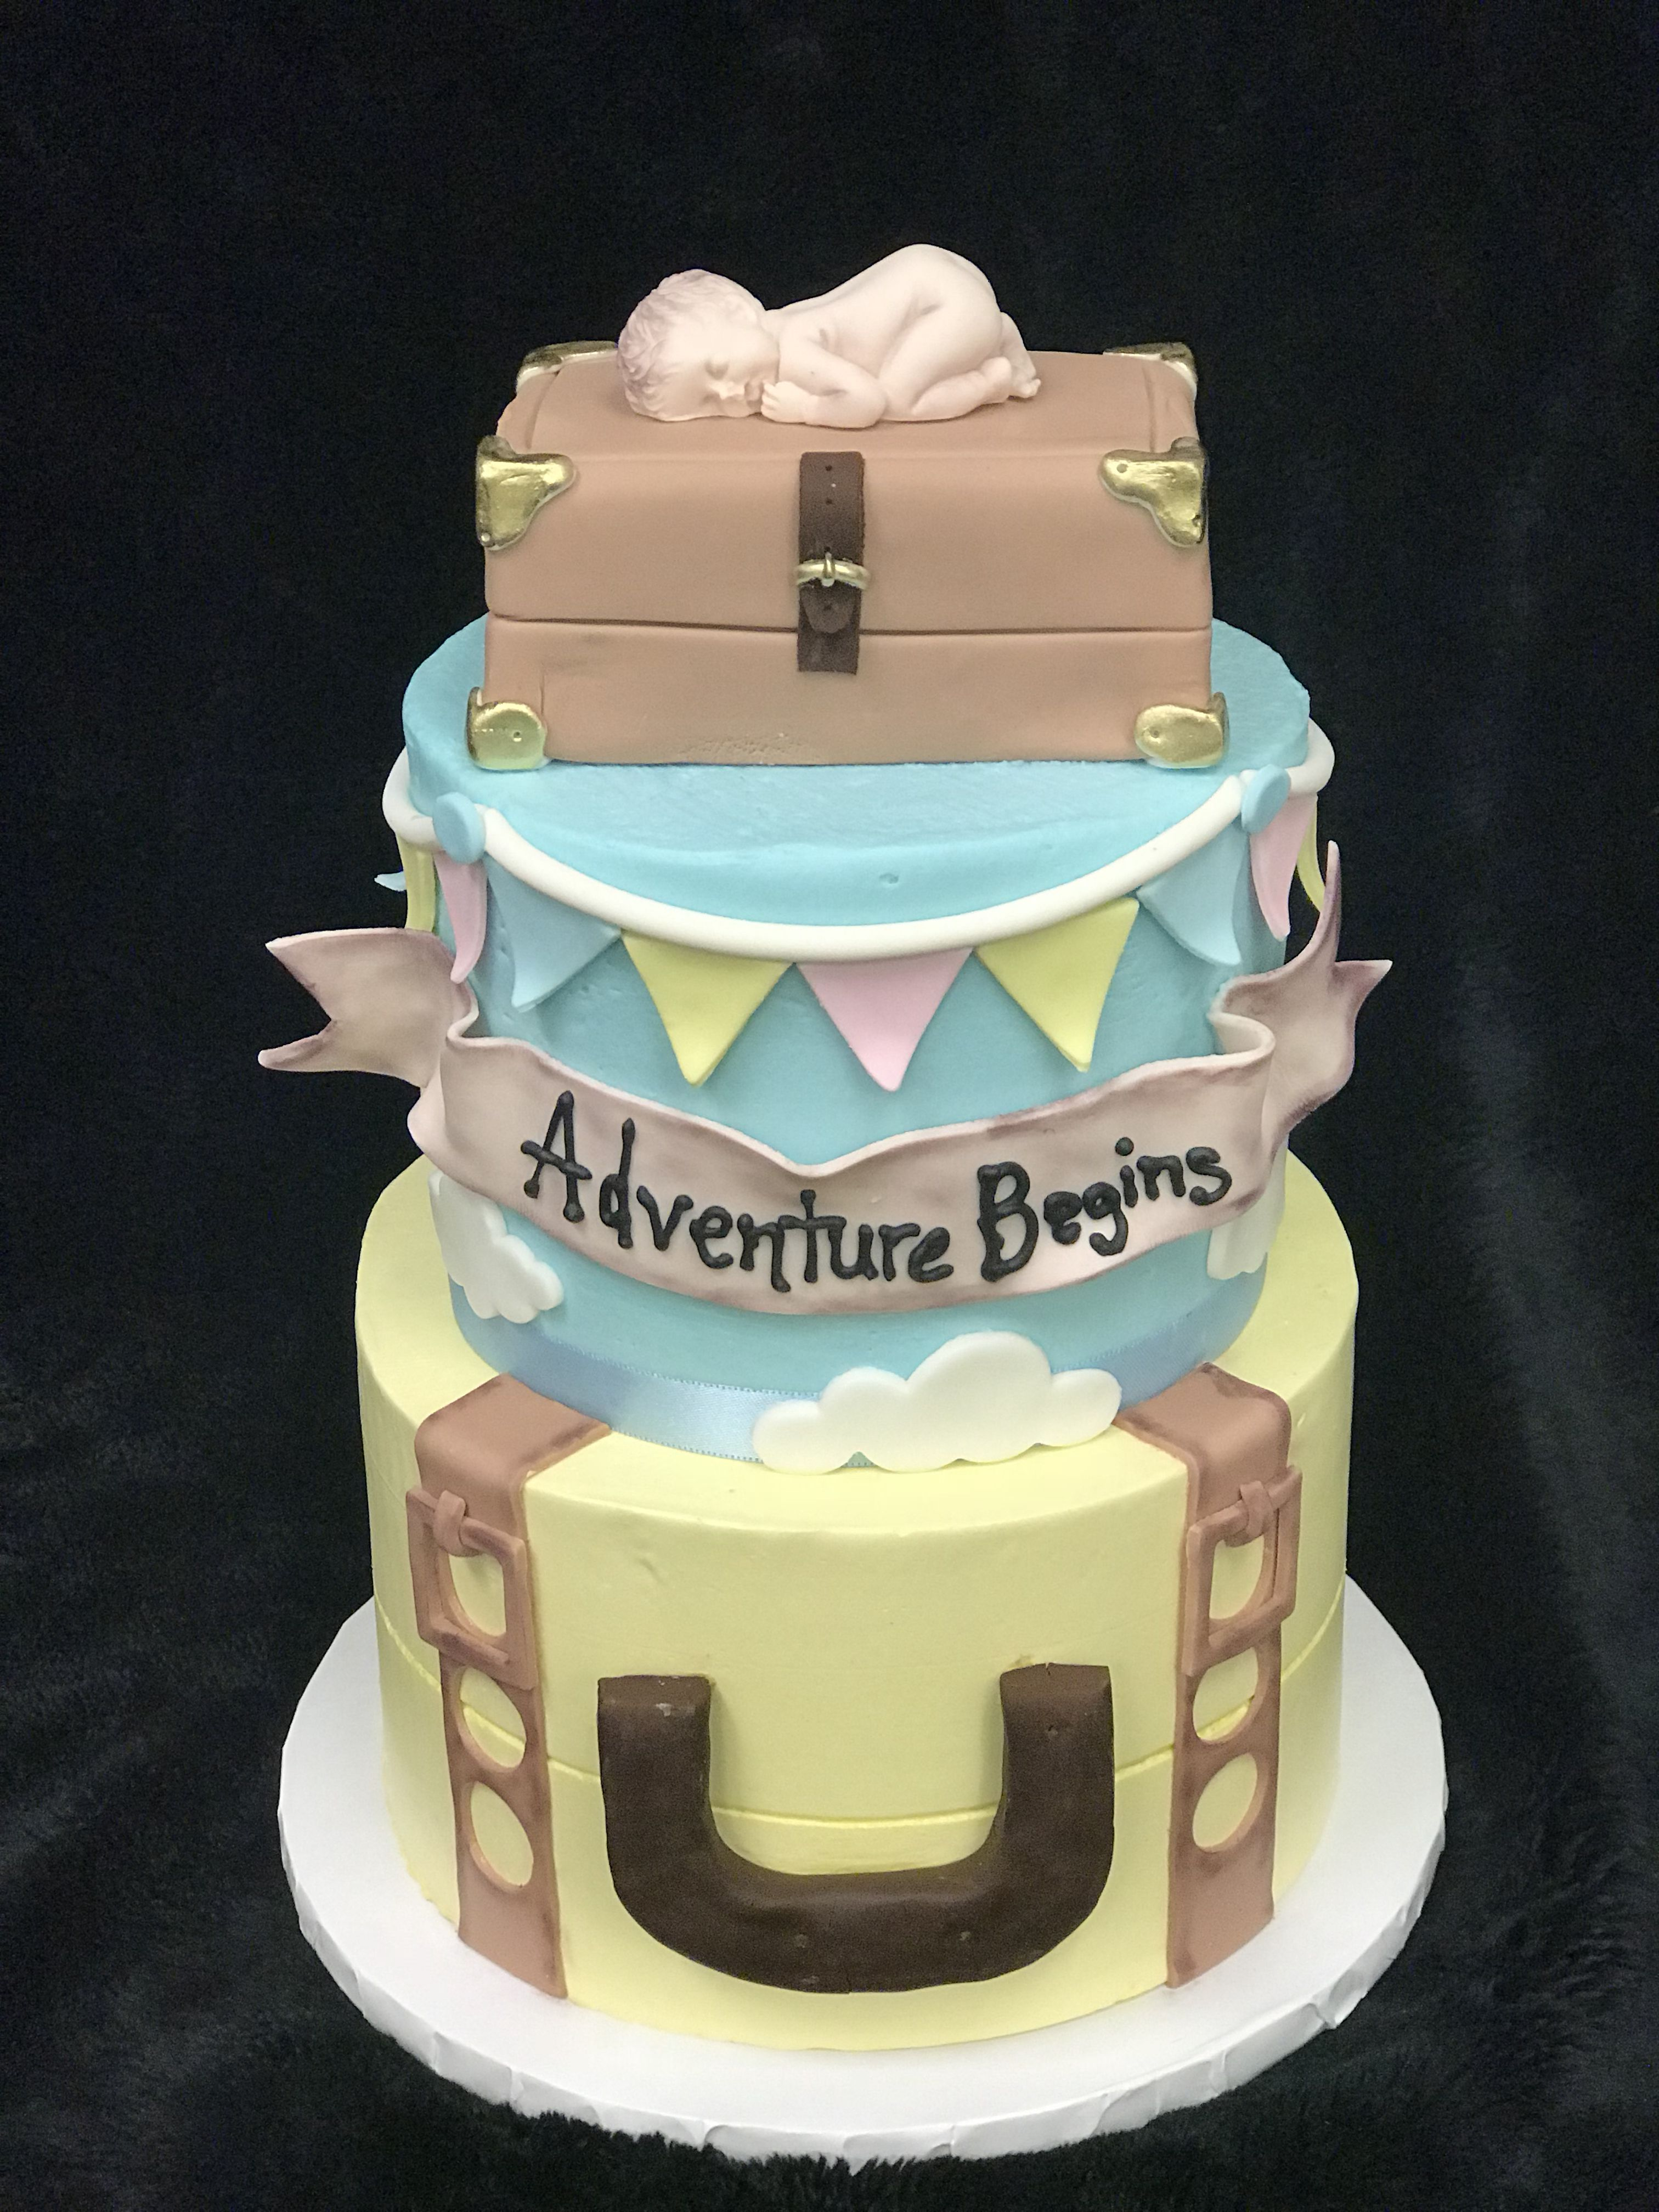 Adventure Awaits Cake Baby Shower Cakes Shower Cakes